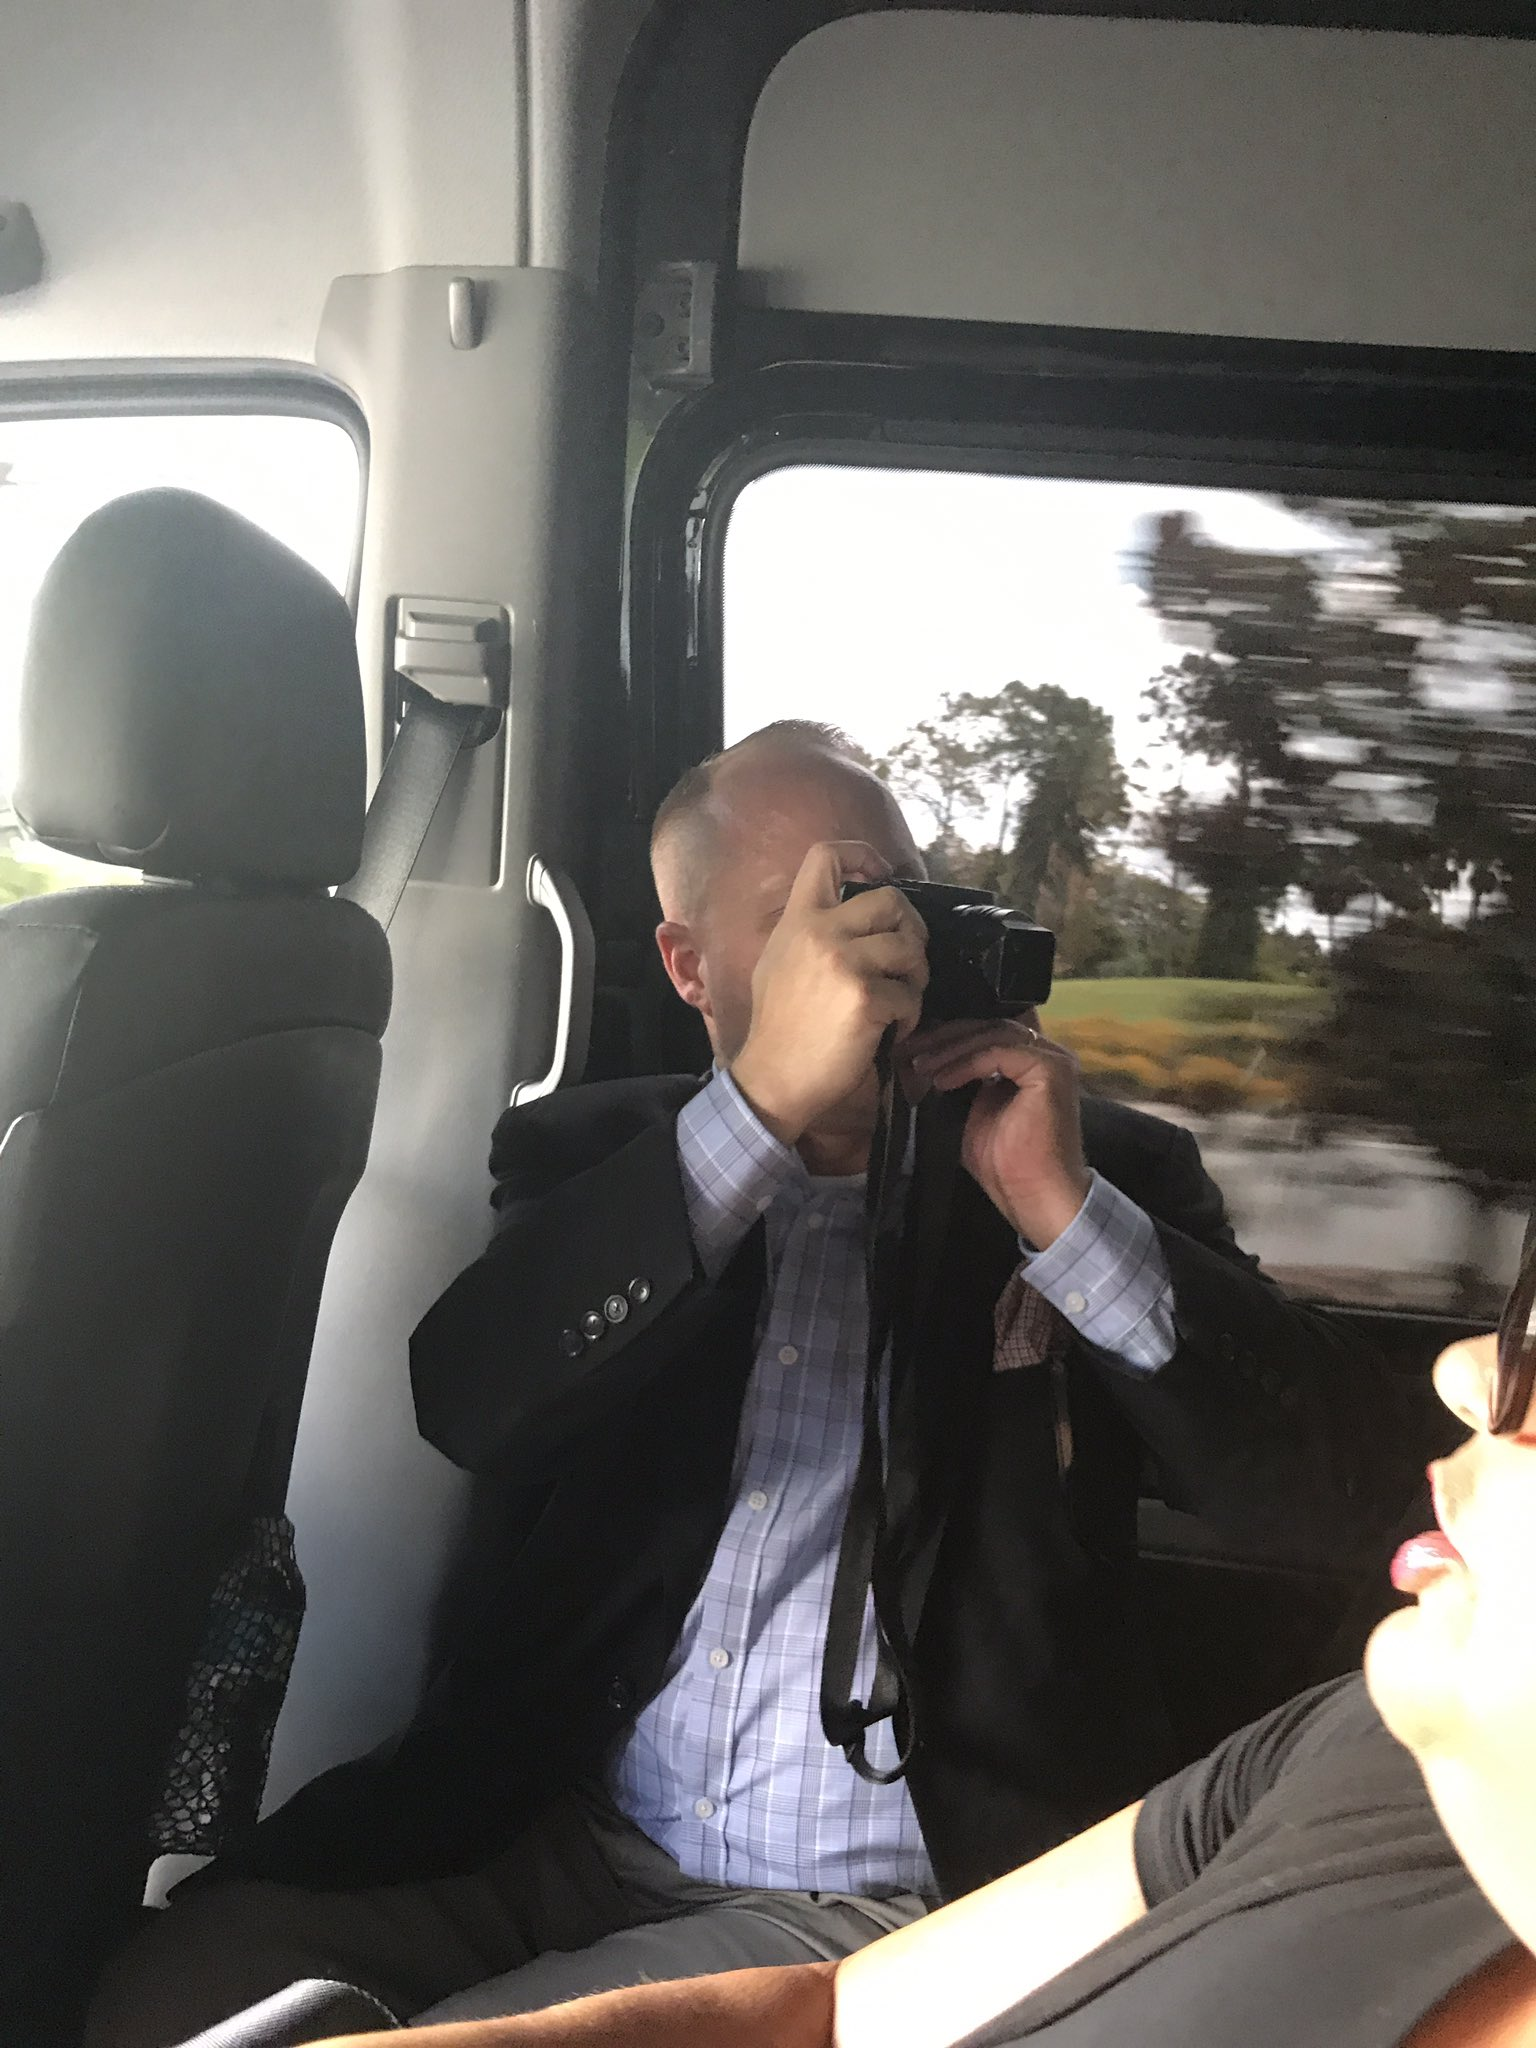 .@TeakPhillips has already started chronicling the #CatholicConvo...from the shuttle. #CatholicSTL #Catholic https://t.co/Q4zQ1iGyxw